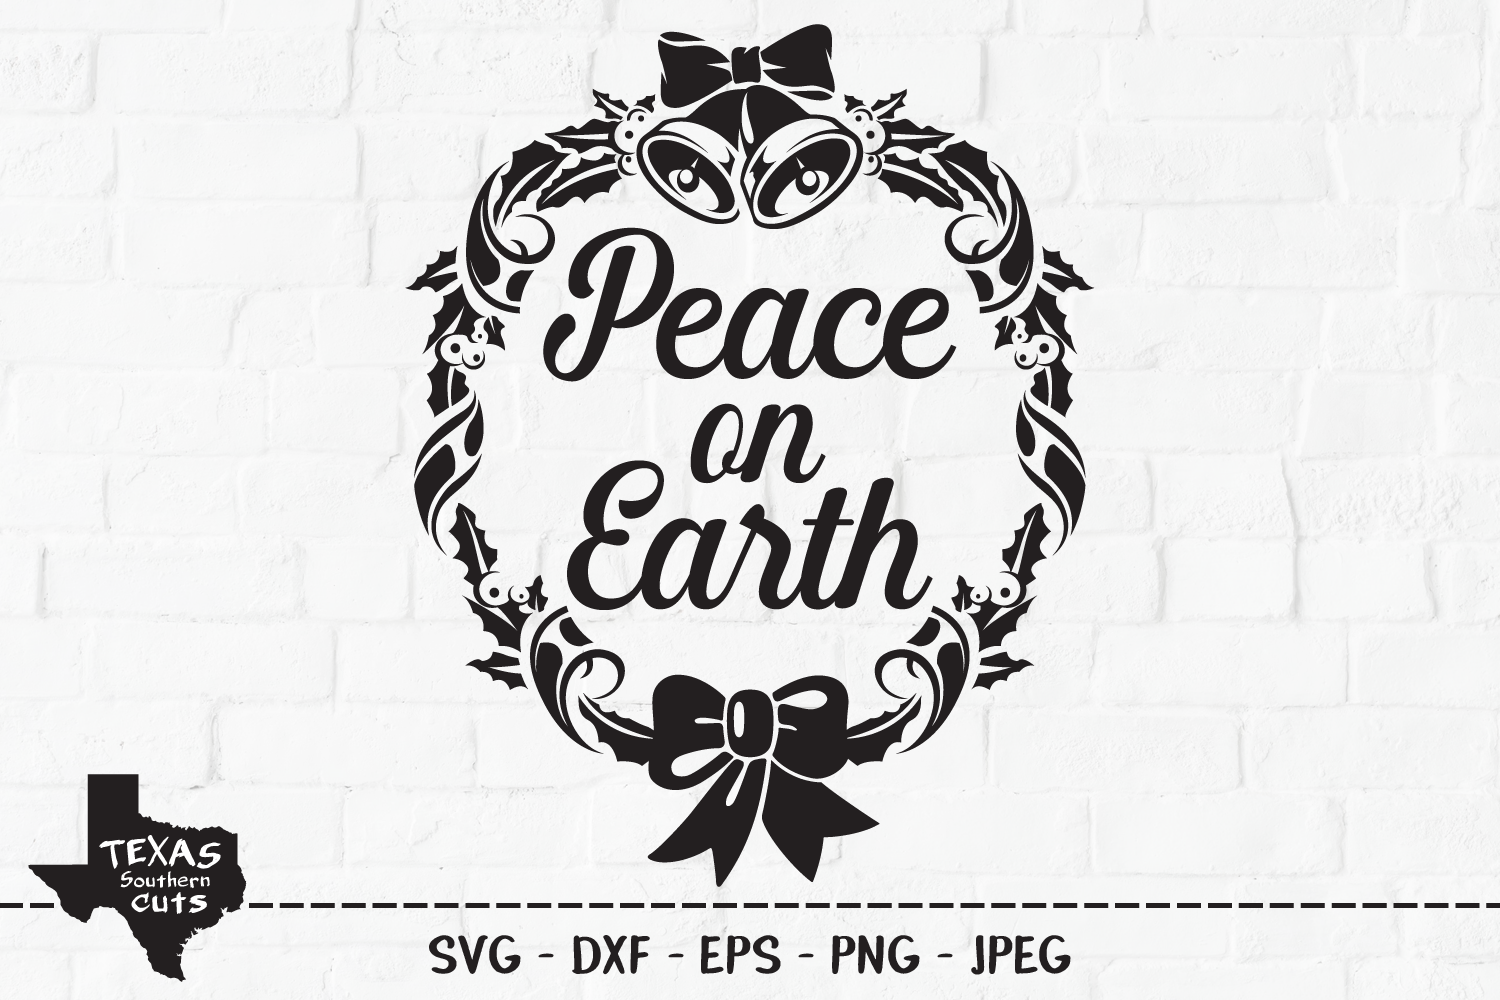 Download Free Peace On Earth Wreath Design Graphic By Texassoutherncuts for Cricut Explore, Silhouette and other cutting machines.